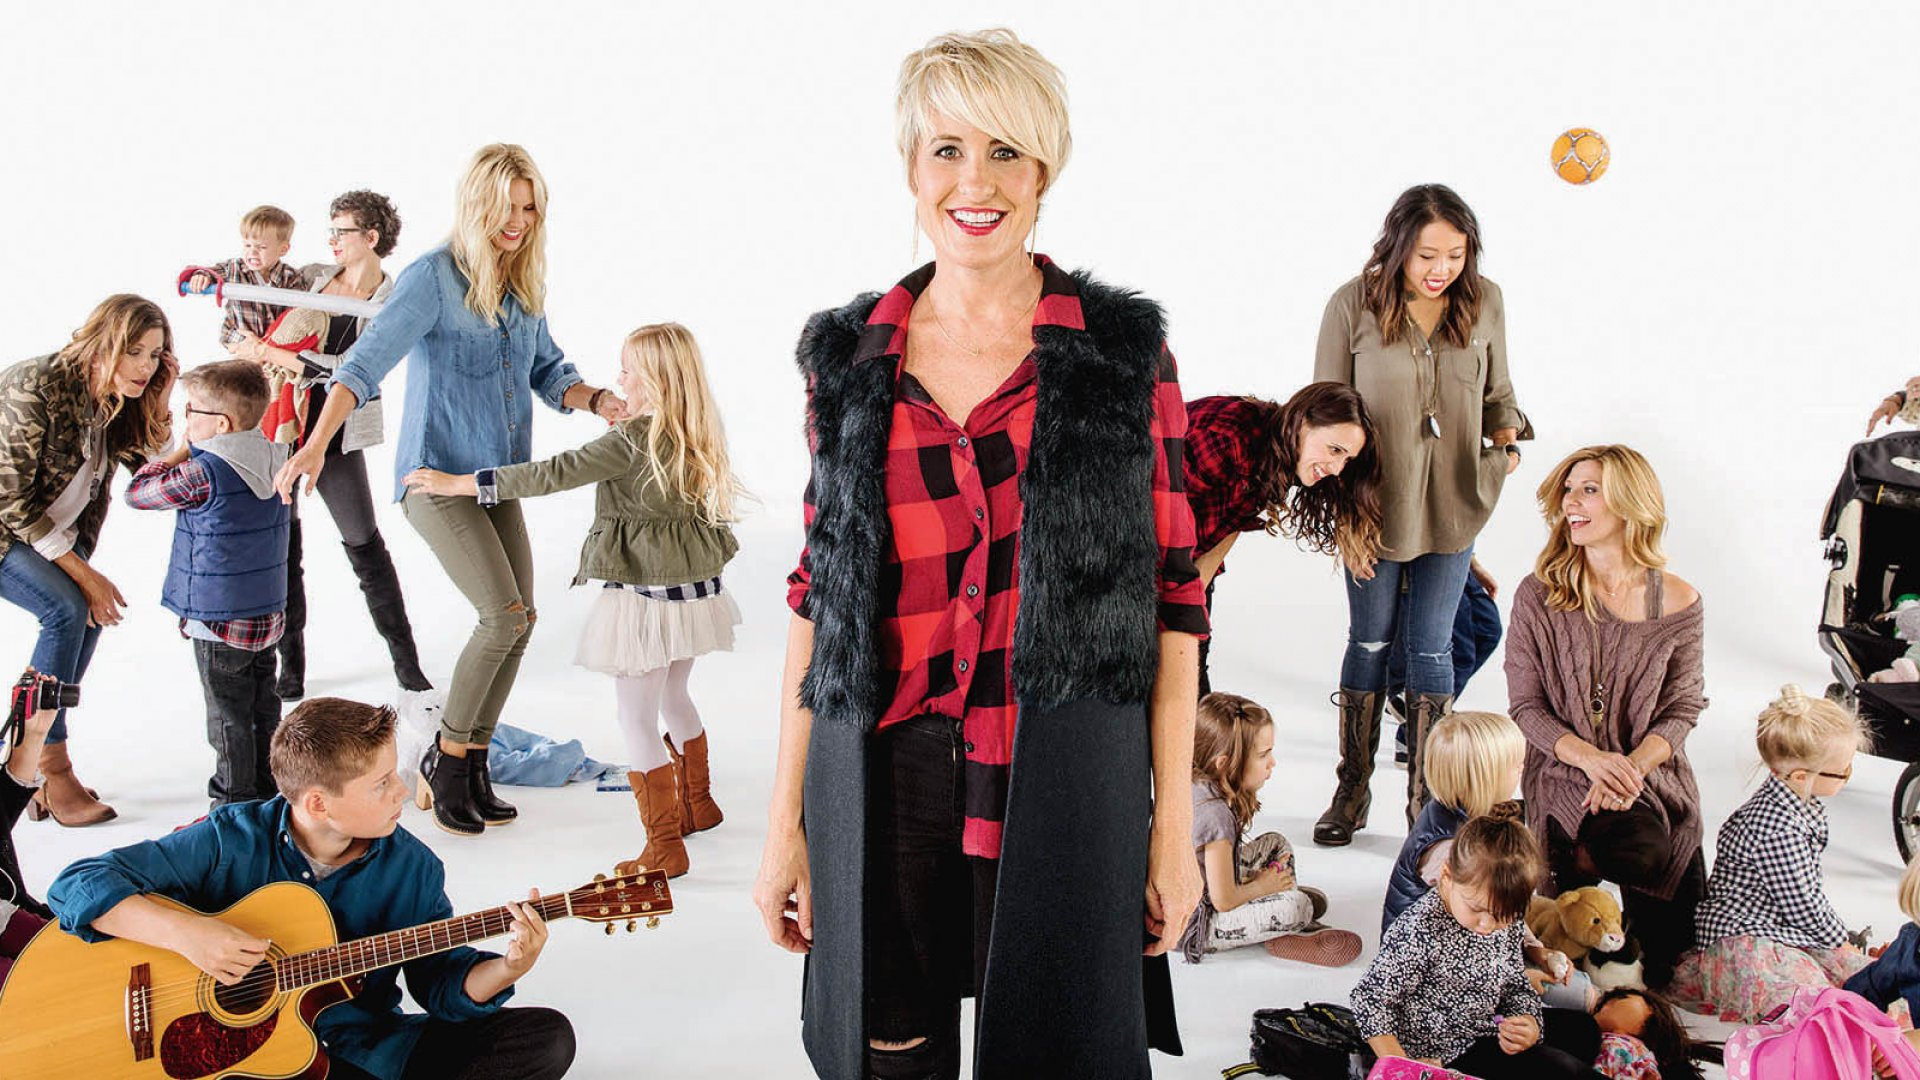 Megan Tamte, surrounded by her Evereve-clad customers, found inspiration from reality TV - and from her frustrating shopping experiences as a young mother.